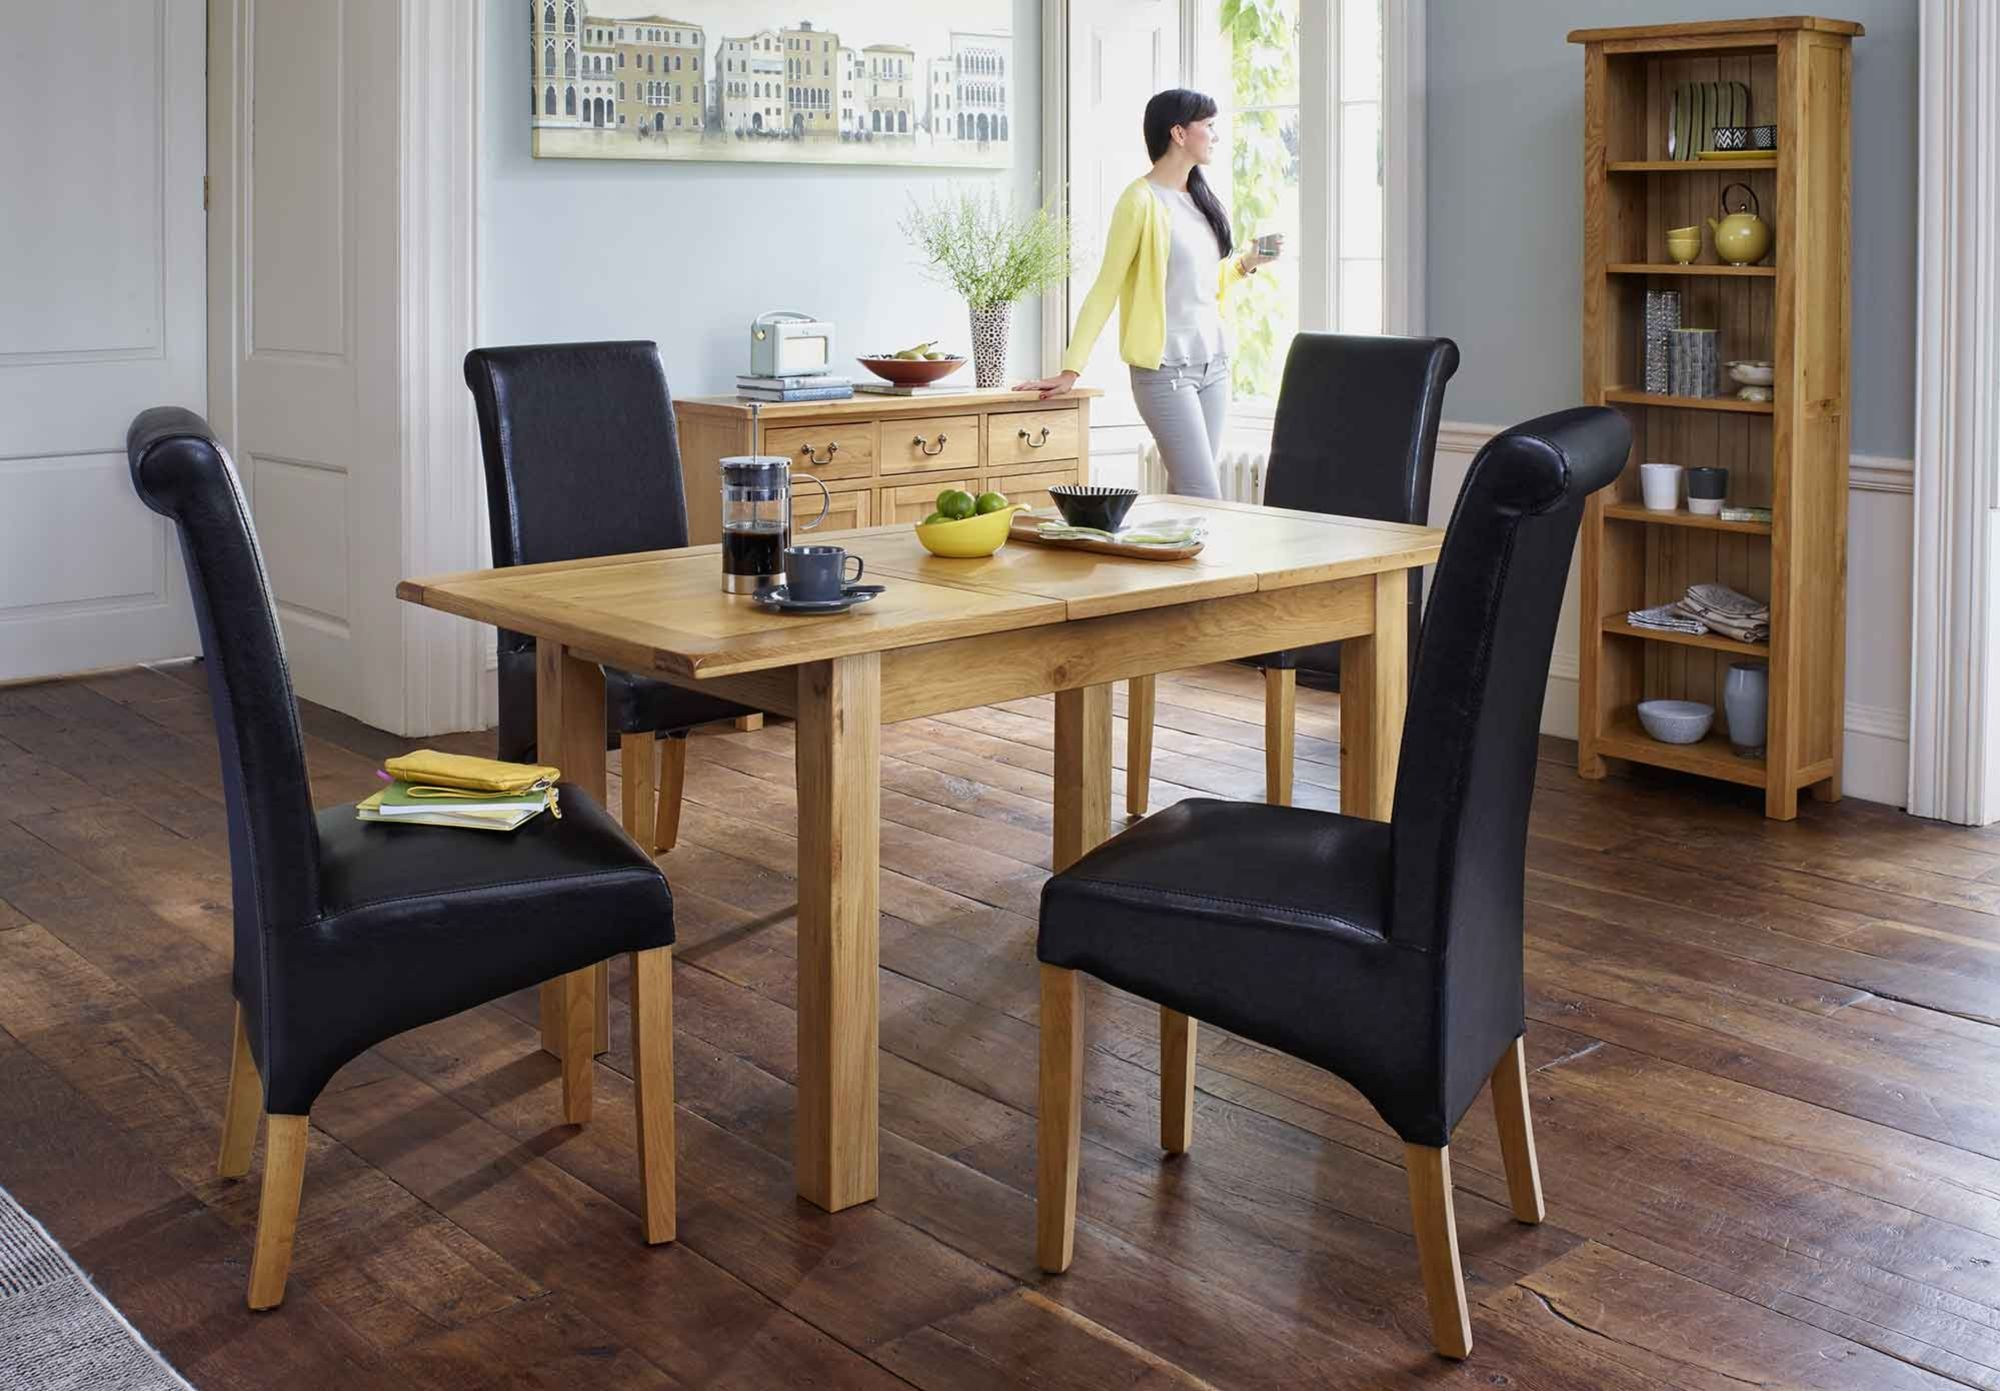 Dining Table And 4 Chairs Arlington Room Furniture At Village